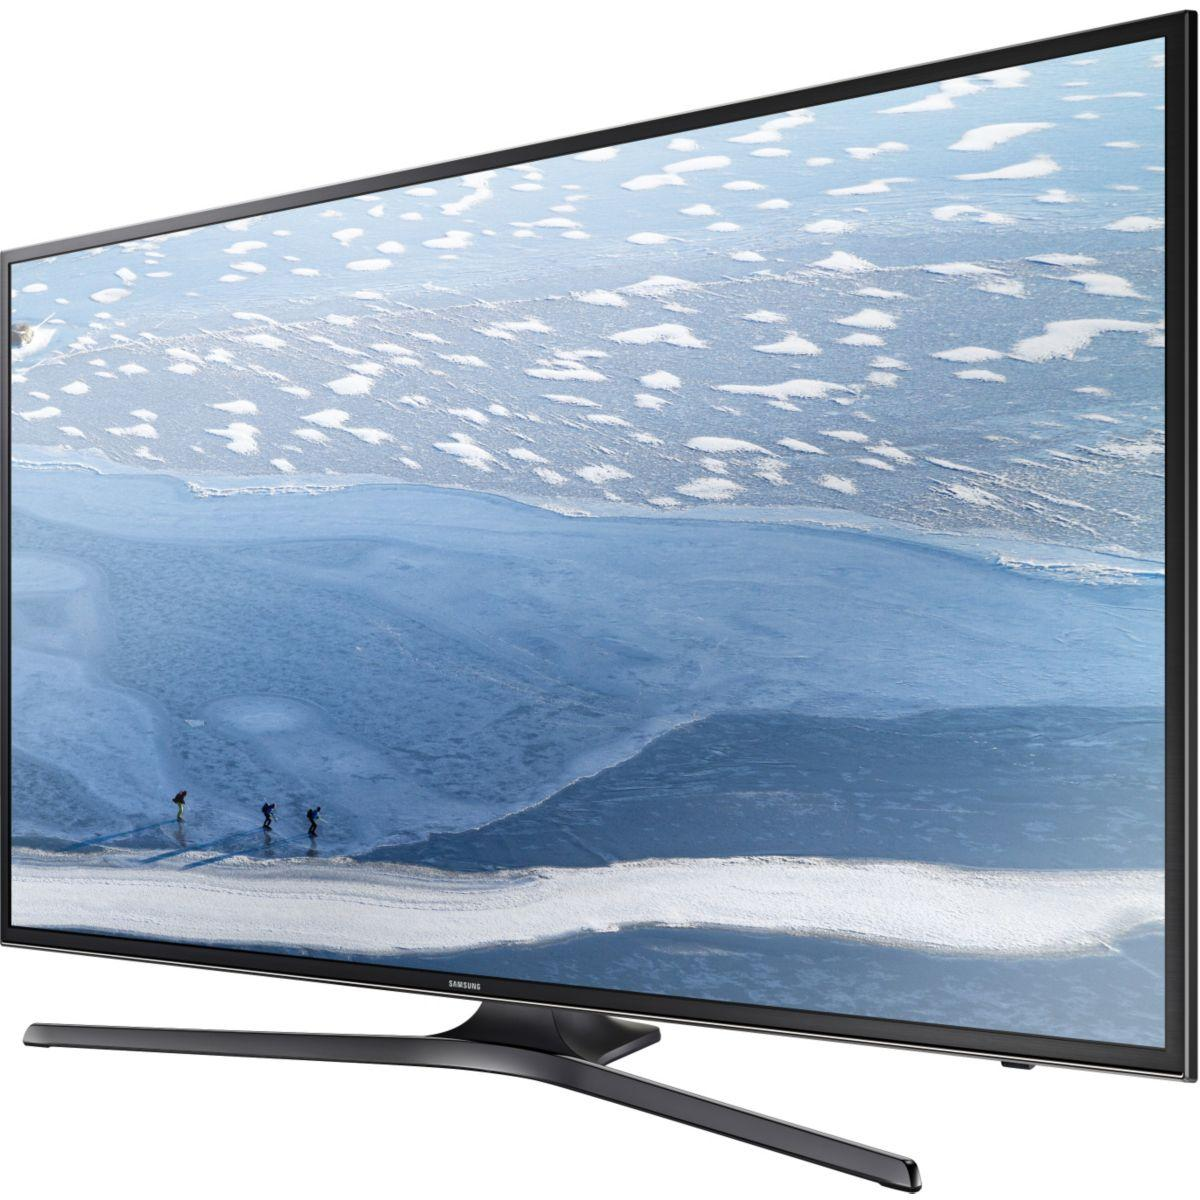 TV SAMSUNG UE55KU6000 4K HDR 1300 PQI SMART TV